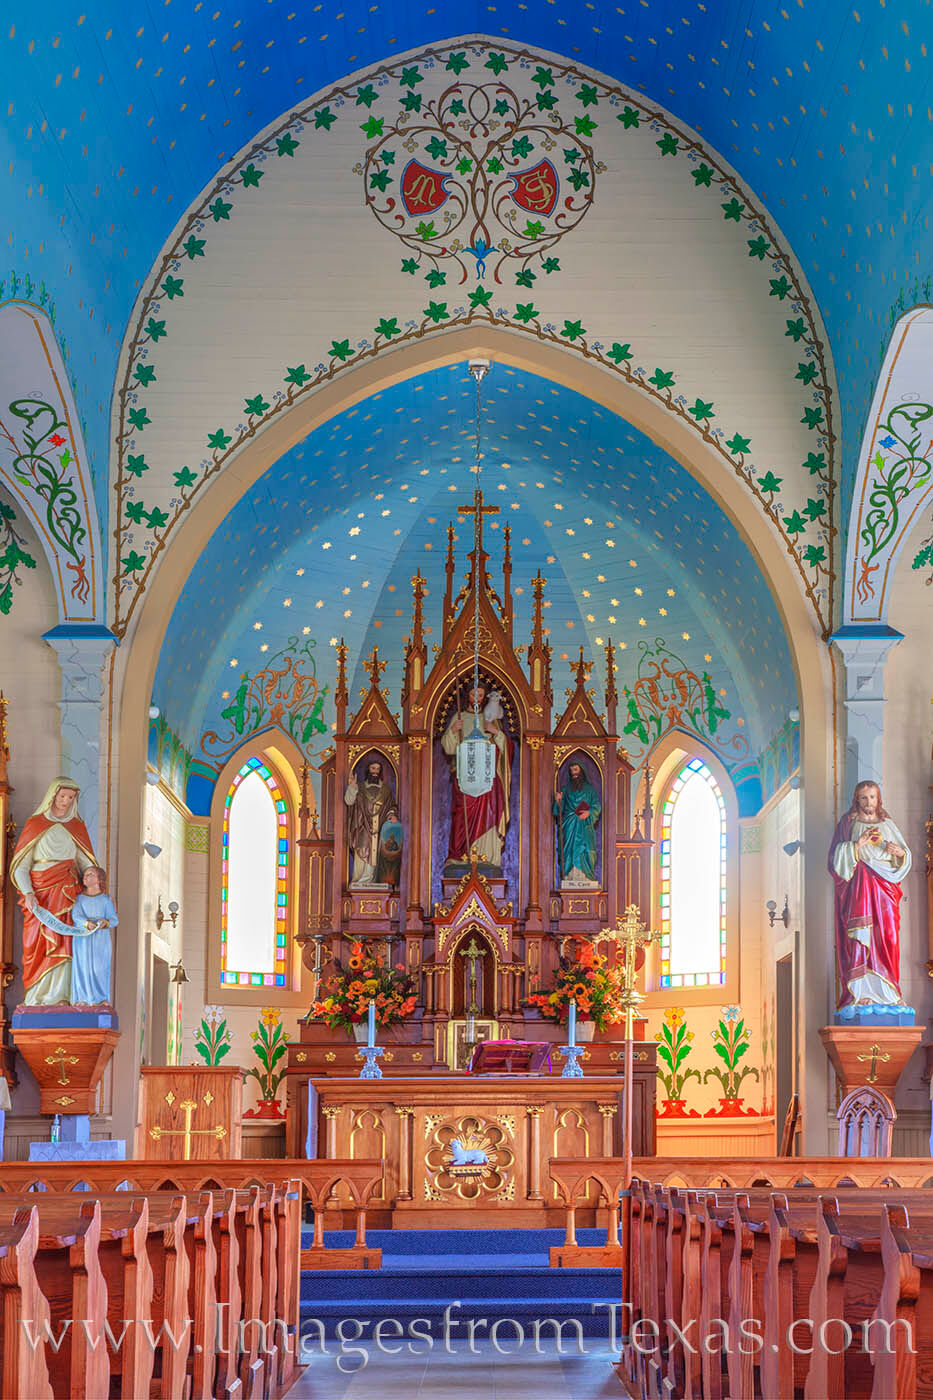 The light blue ceiling of Dubina's Saint Cyril and Methodius Church is sprinkled with stars, and oak leaves and twisting vines...